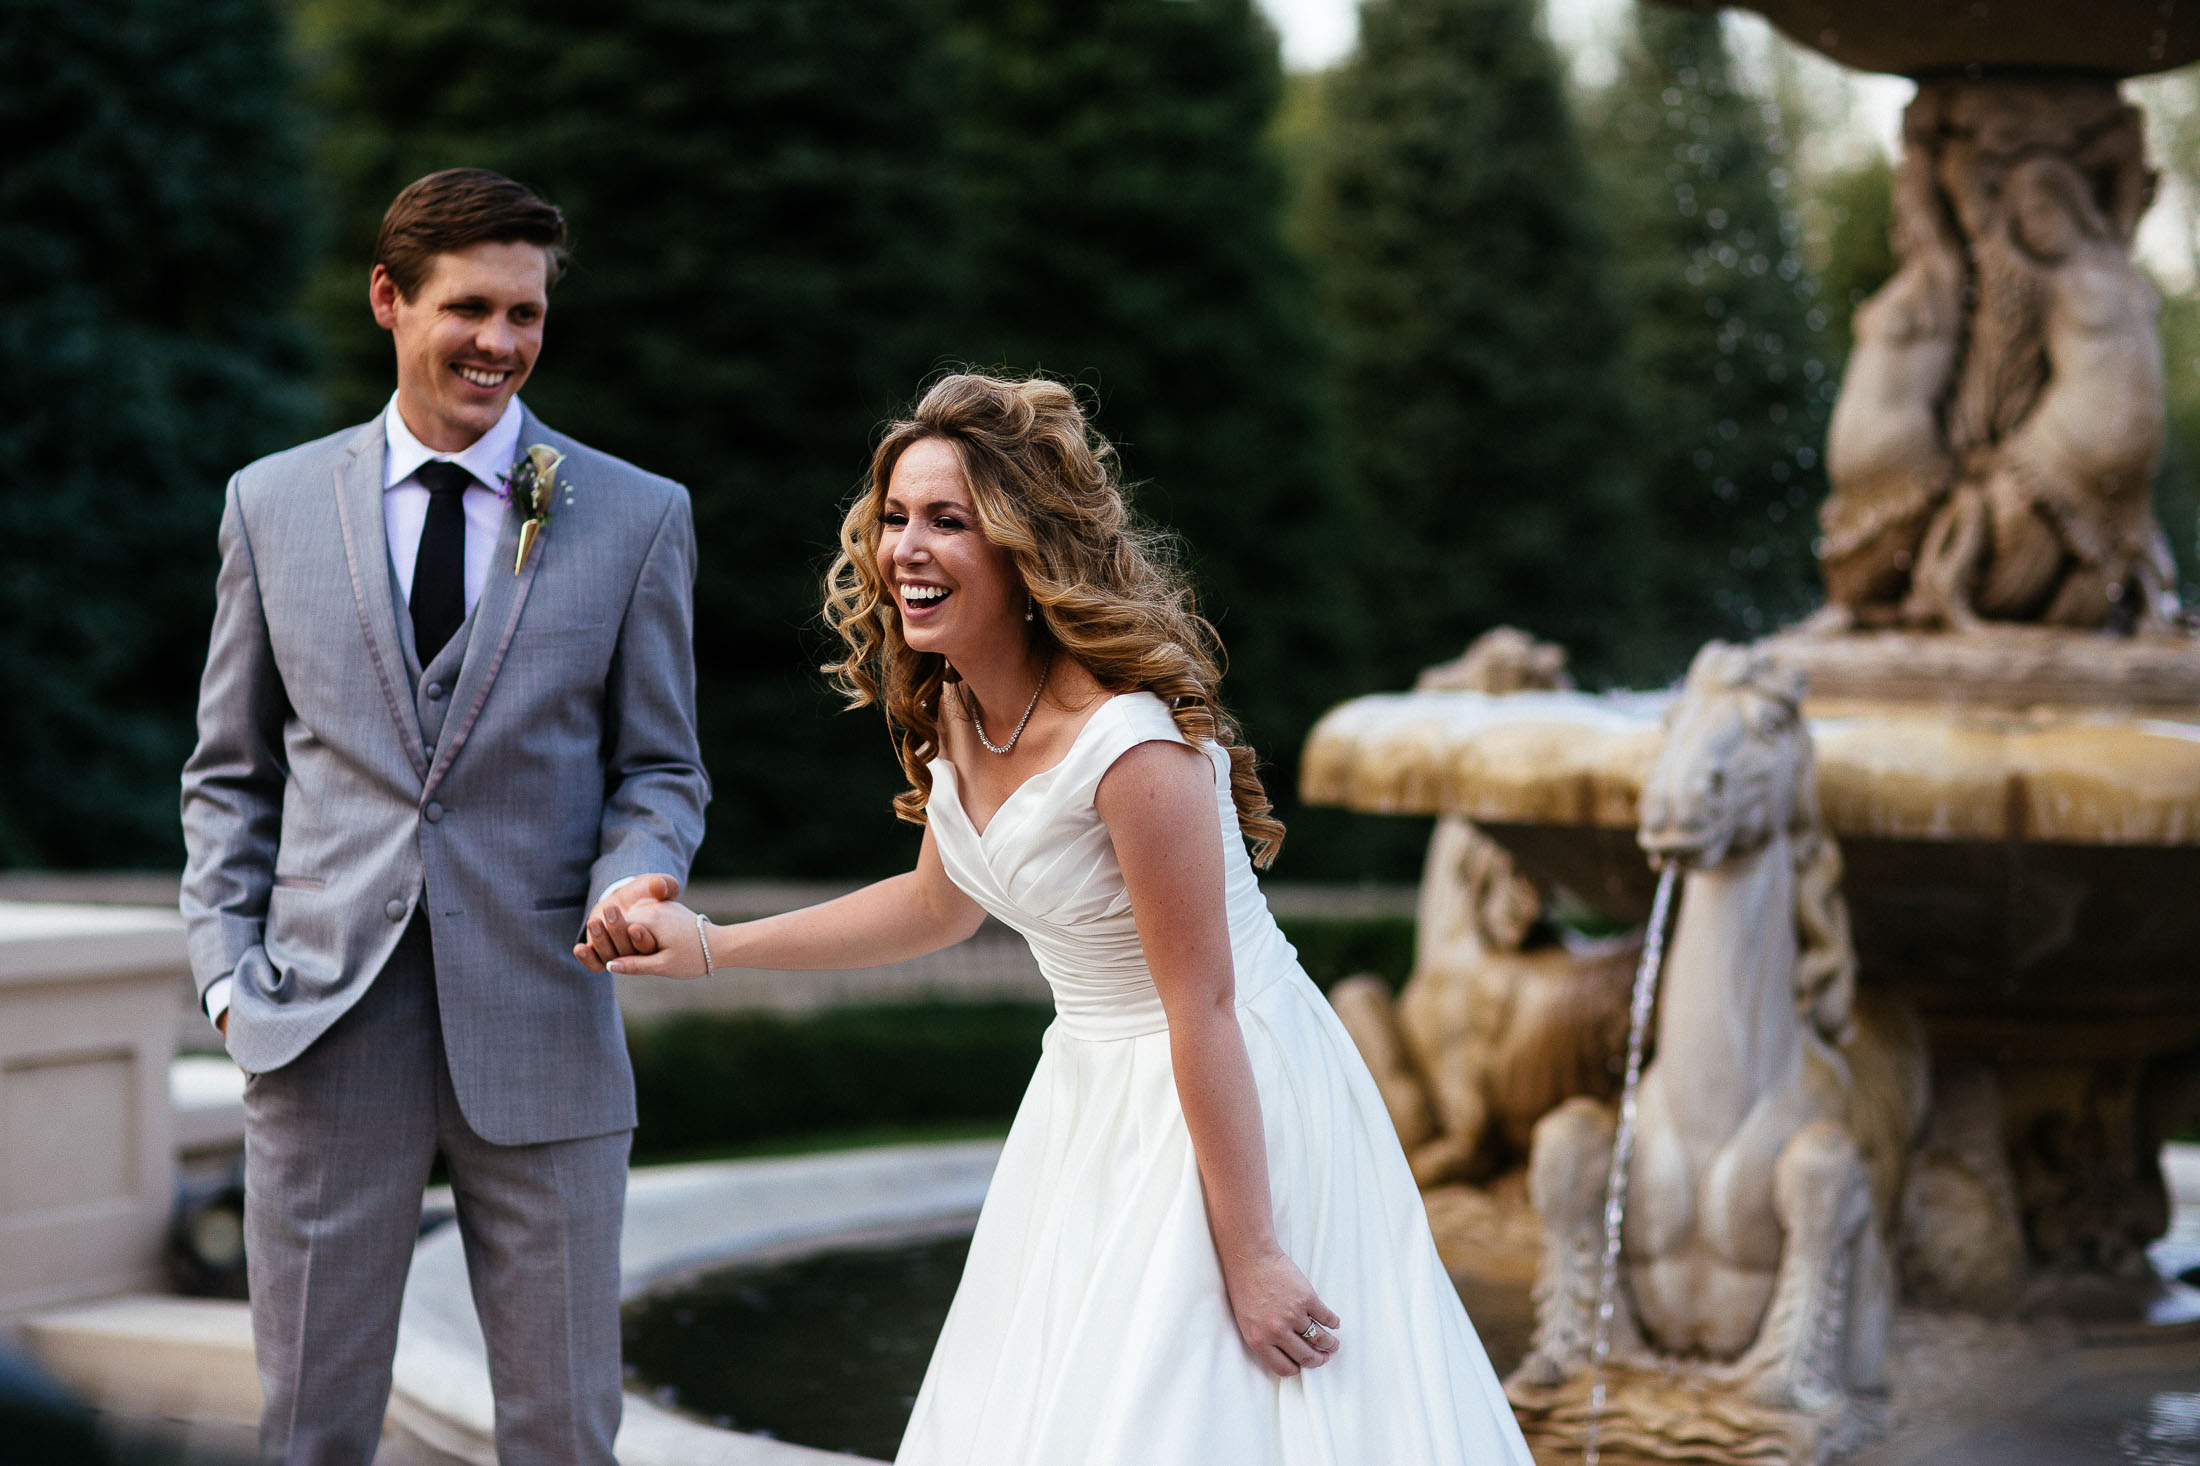 Bride holds groom's hand and laughs on their wedding day at The Broadmoor.